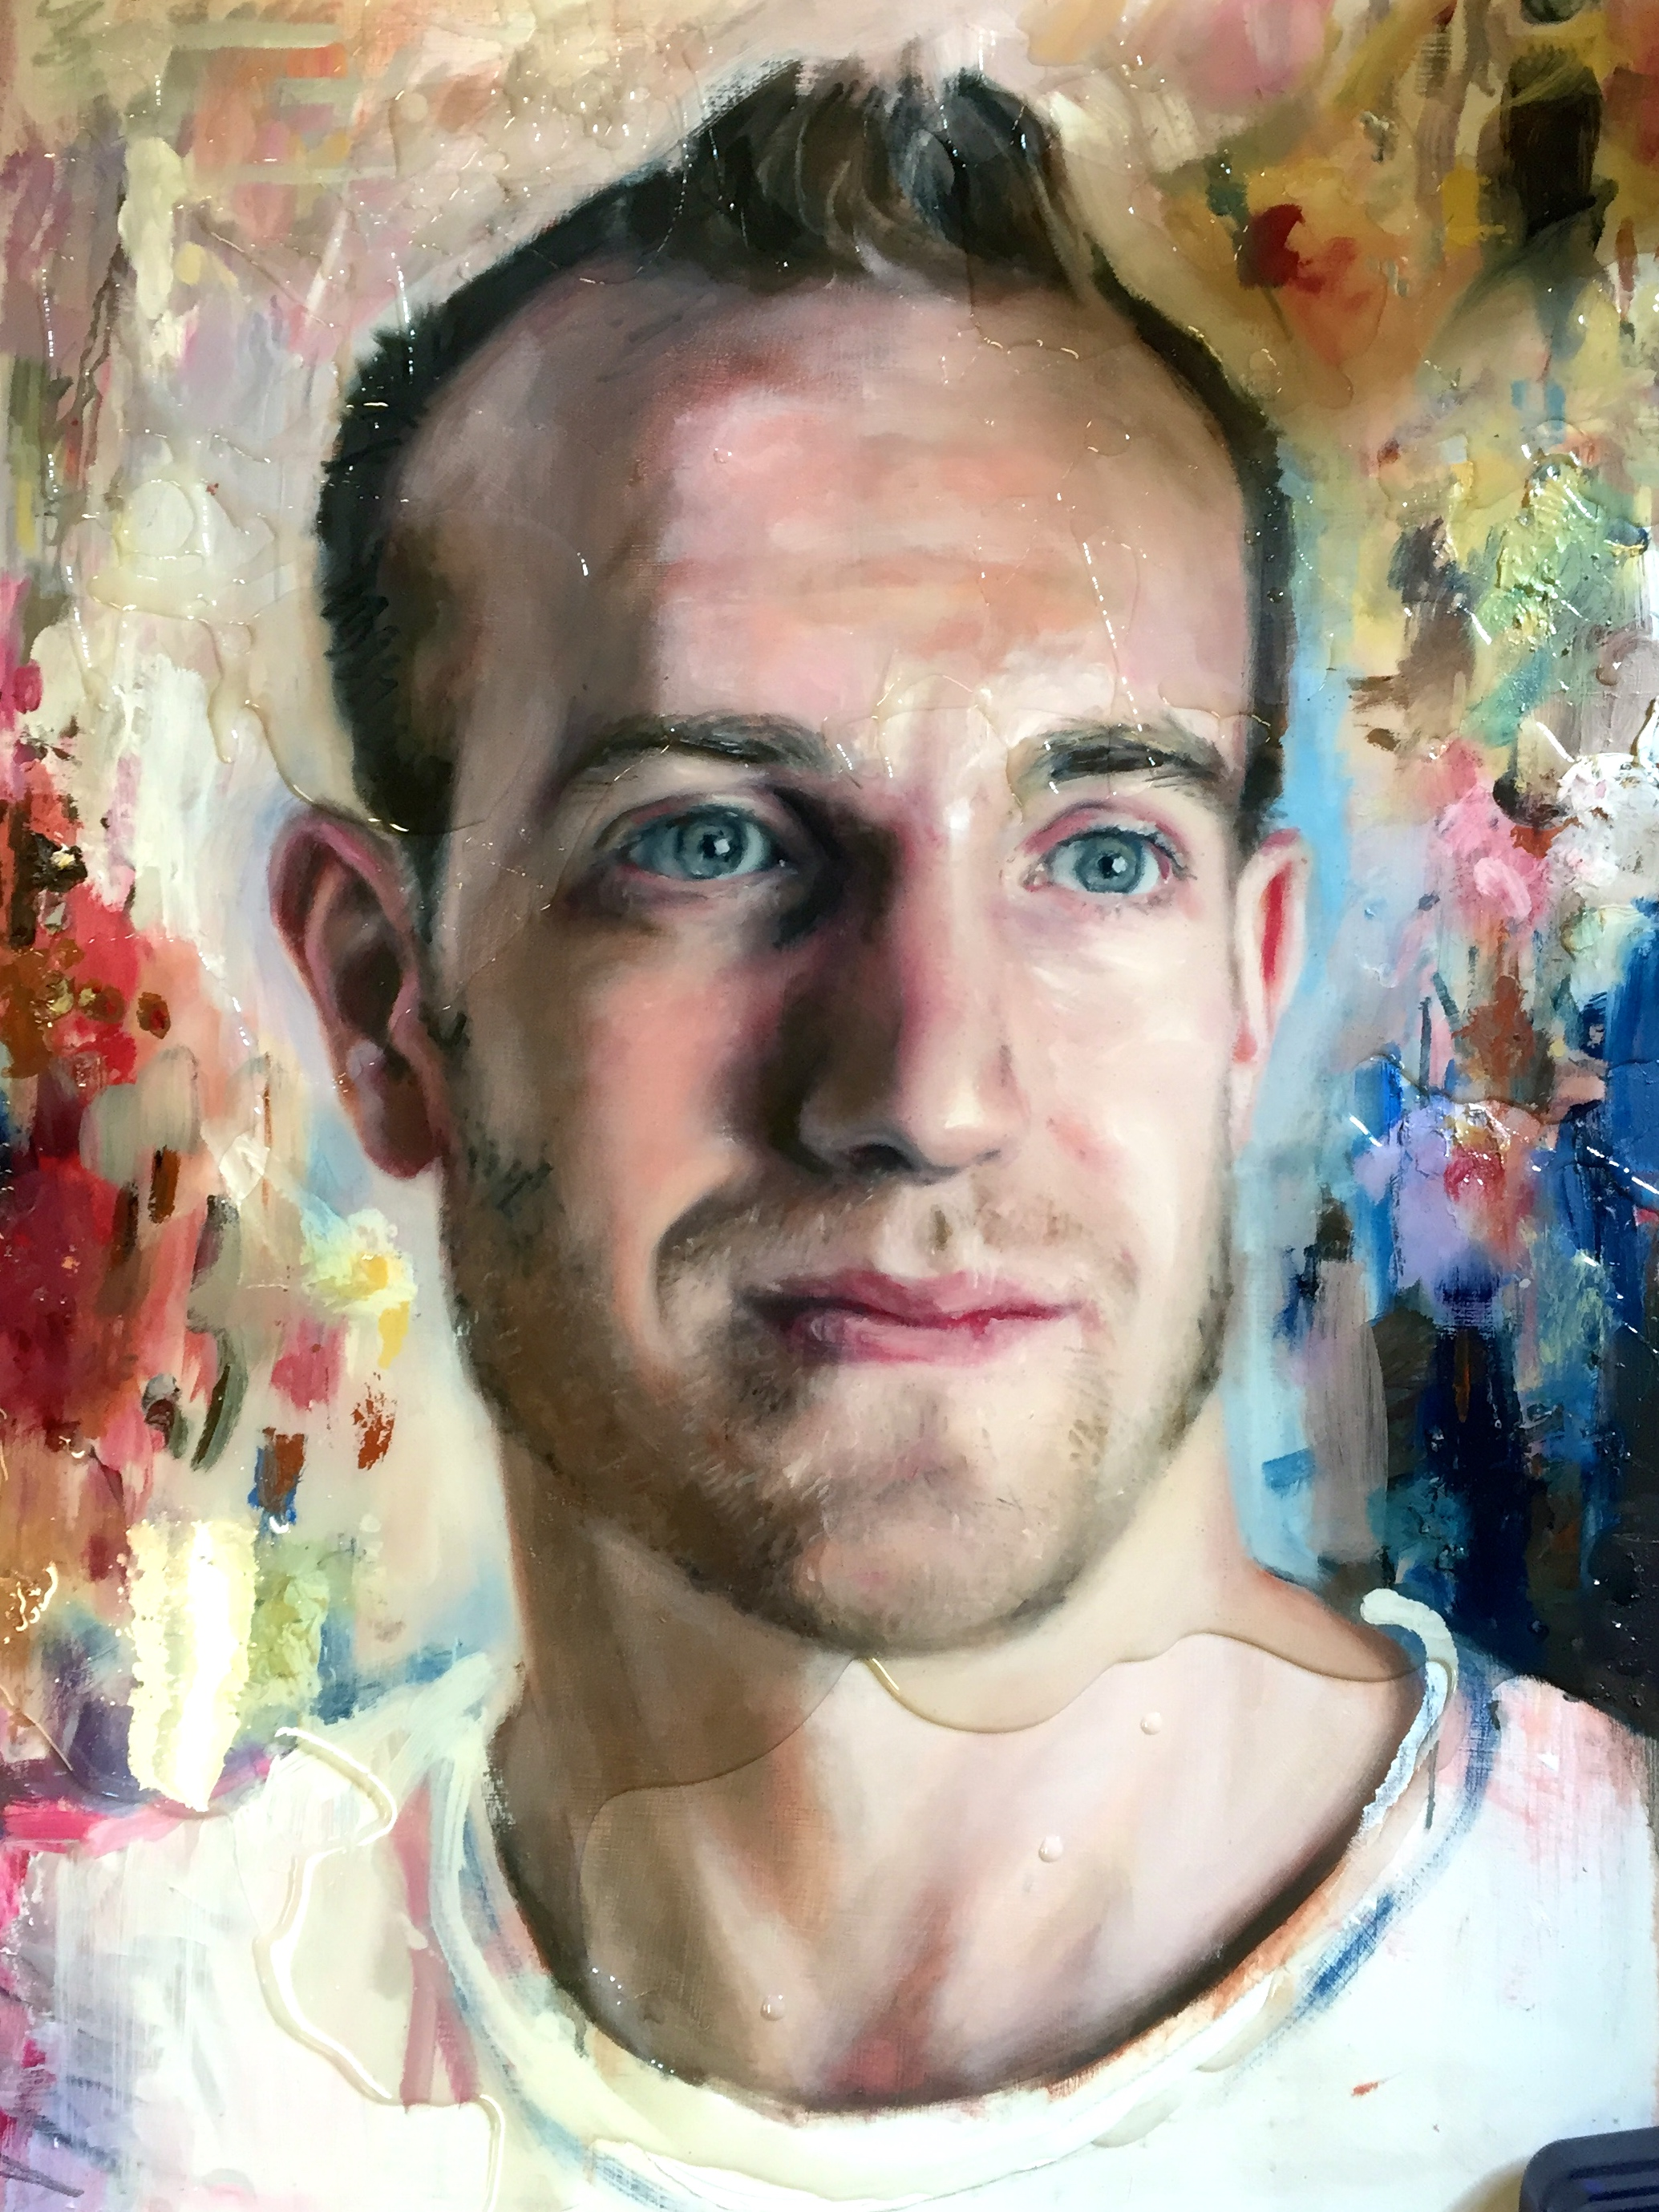 Dylan, Palette Portrait commission, 60x80cm, Oil and Resin on Board. (SOLD)